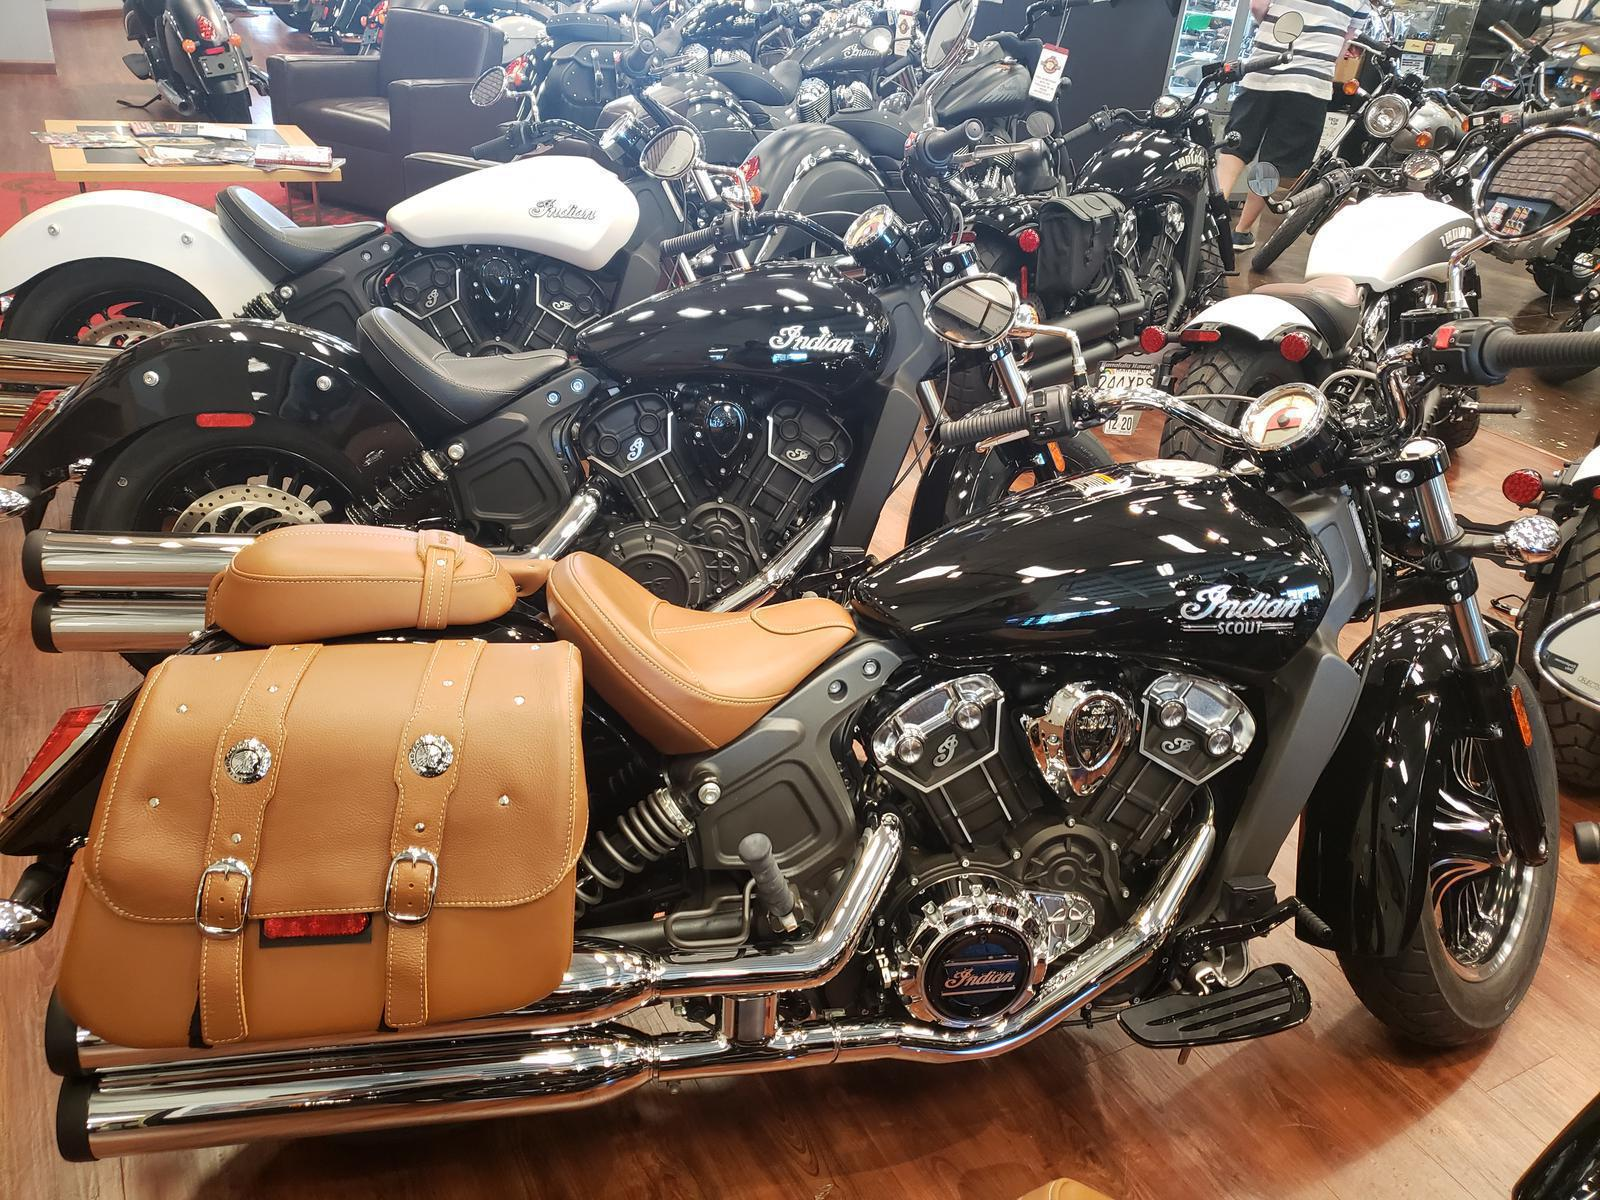 Inventory from Indian Motorcycle Montgomery Powersports